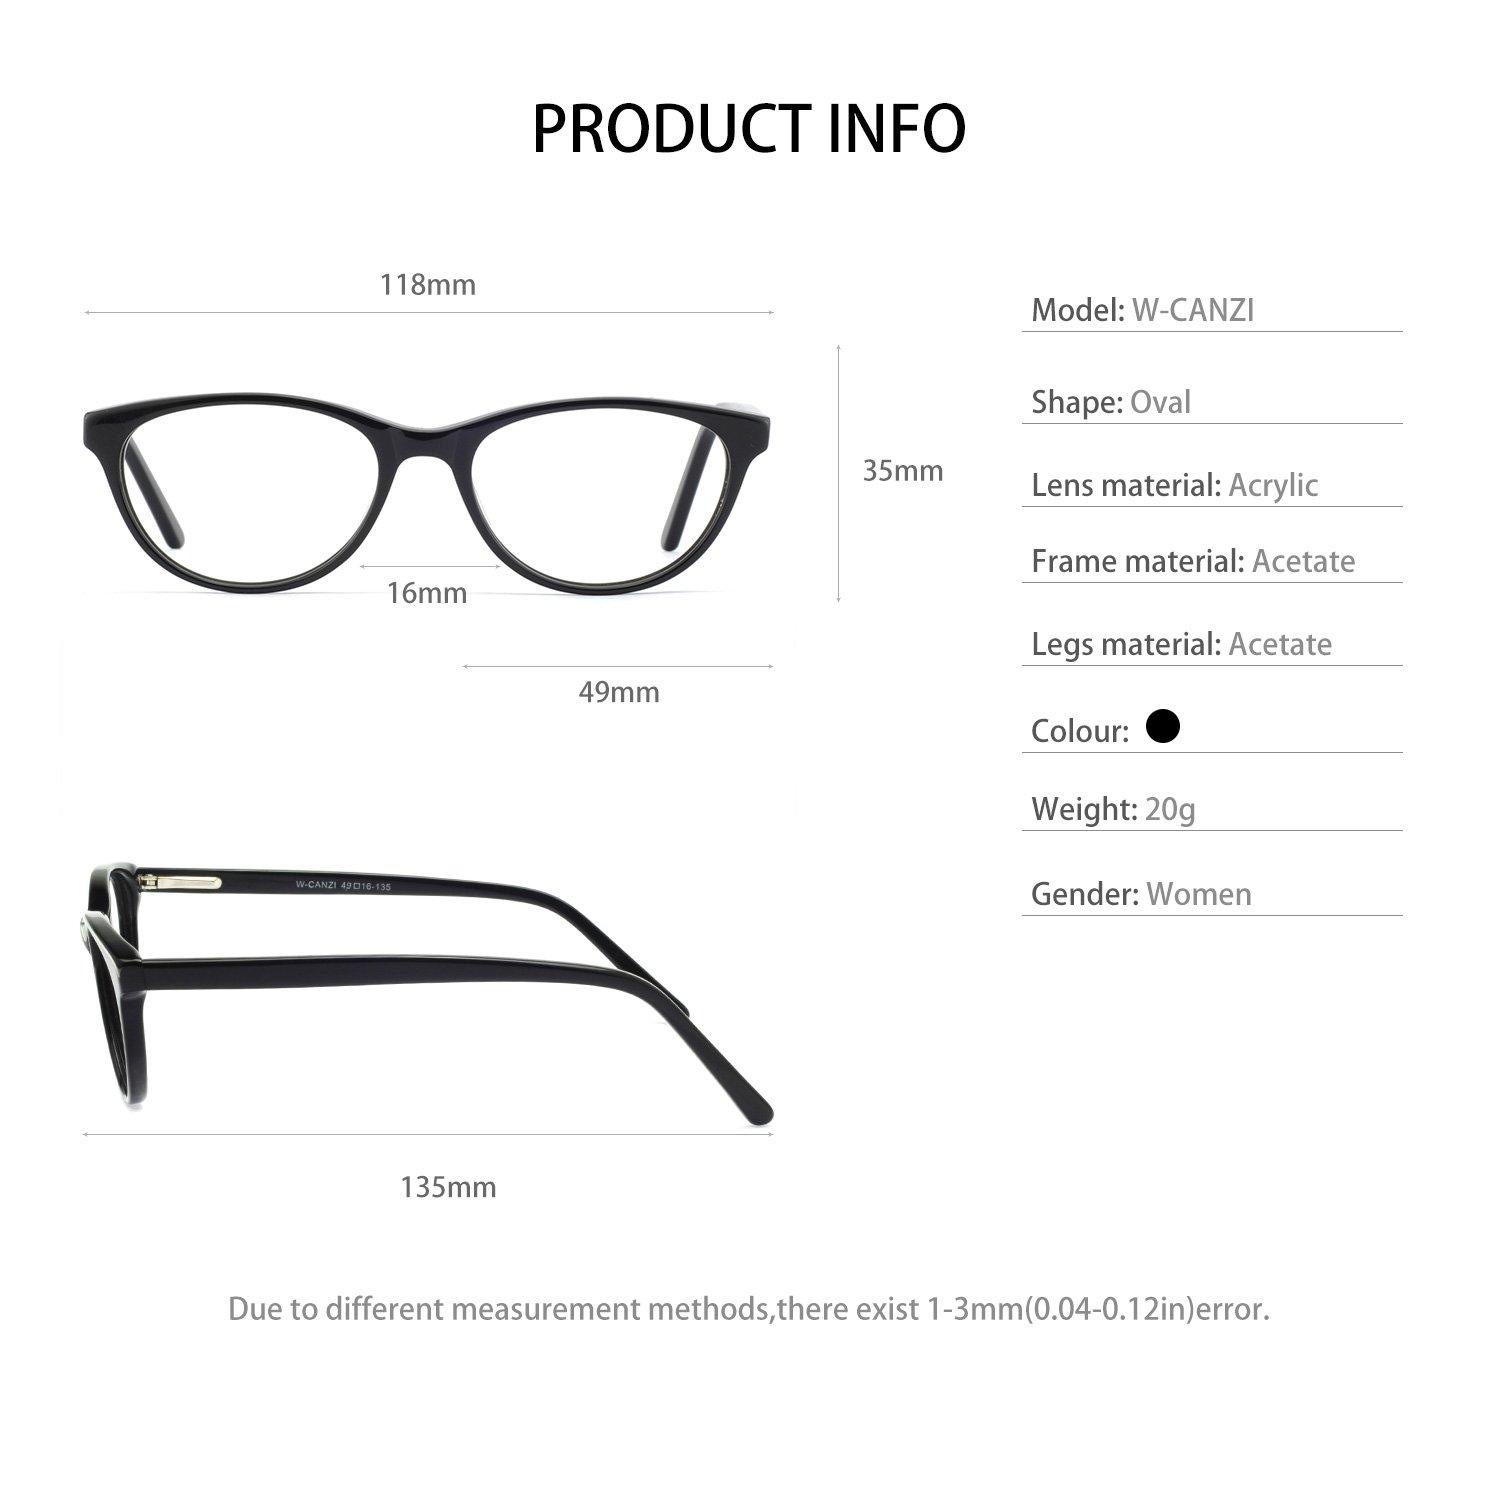 Amazon.com: OCCI CHIARI Eyeglasses with Clear Lenses Fashion ACCETTI ...